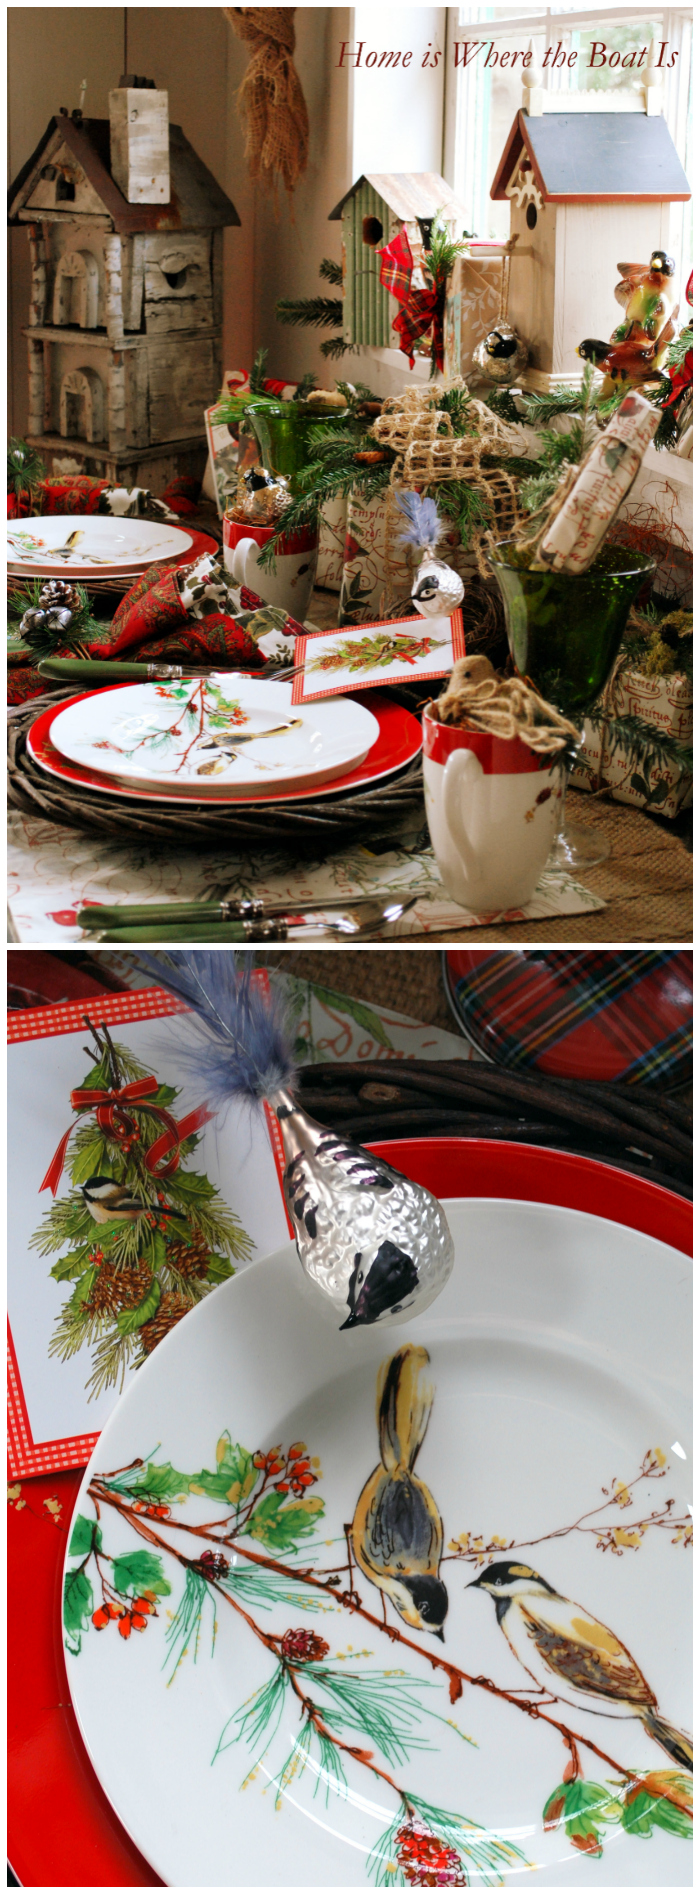 Lenox Winter Song, and Christmas nesting in the Potting Shed and Recycled Pottery Barn Bag Gift Wrap | homeiswheretheboatis.net #Christmas #bird #tablescape #pottingshed